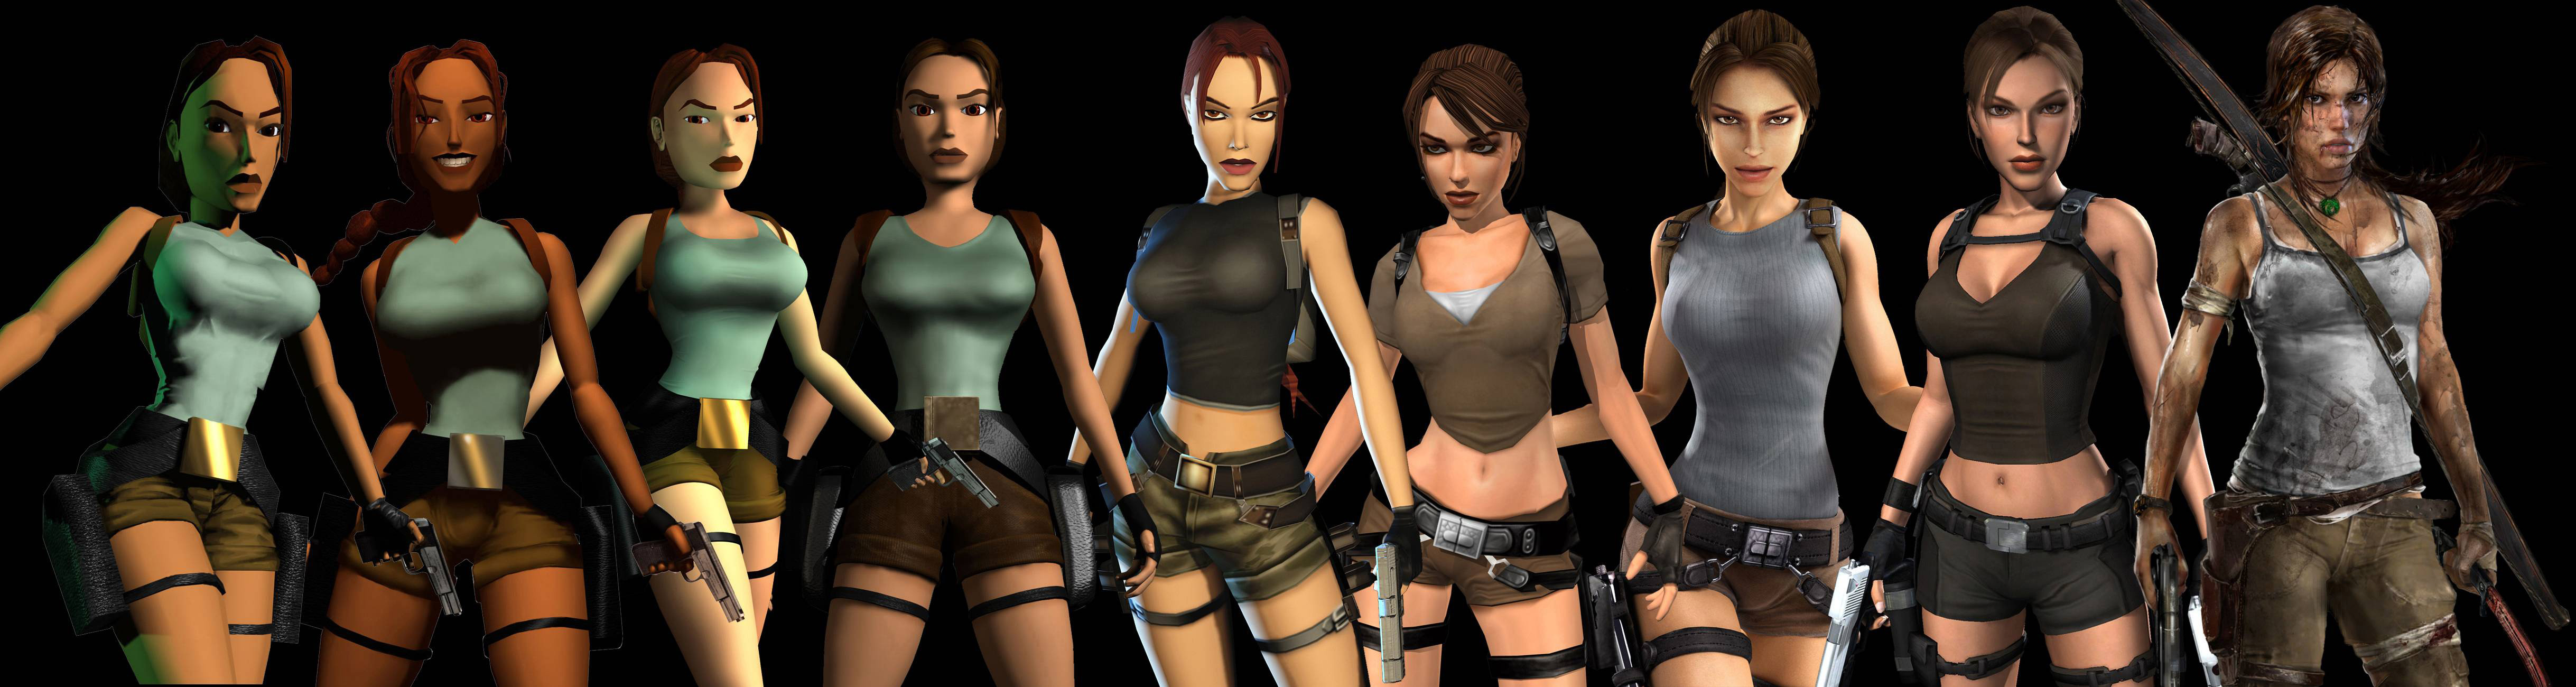 lara_croft_evolution_new.jpg